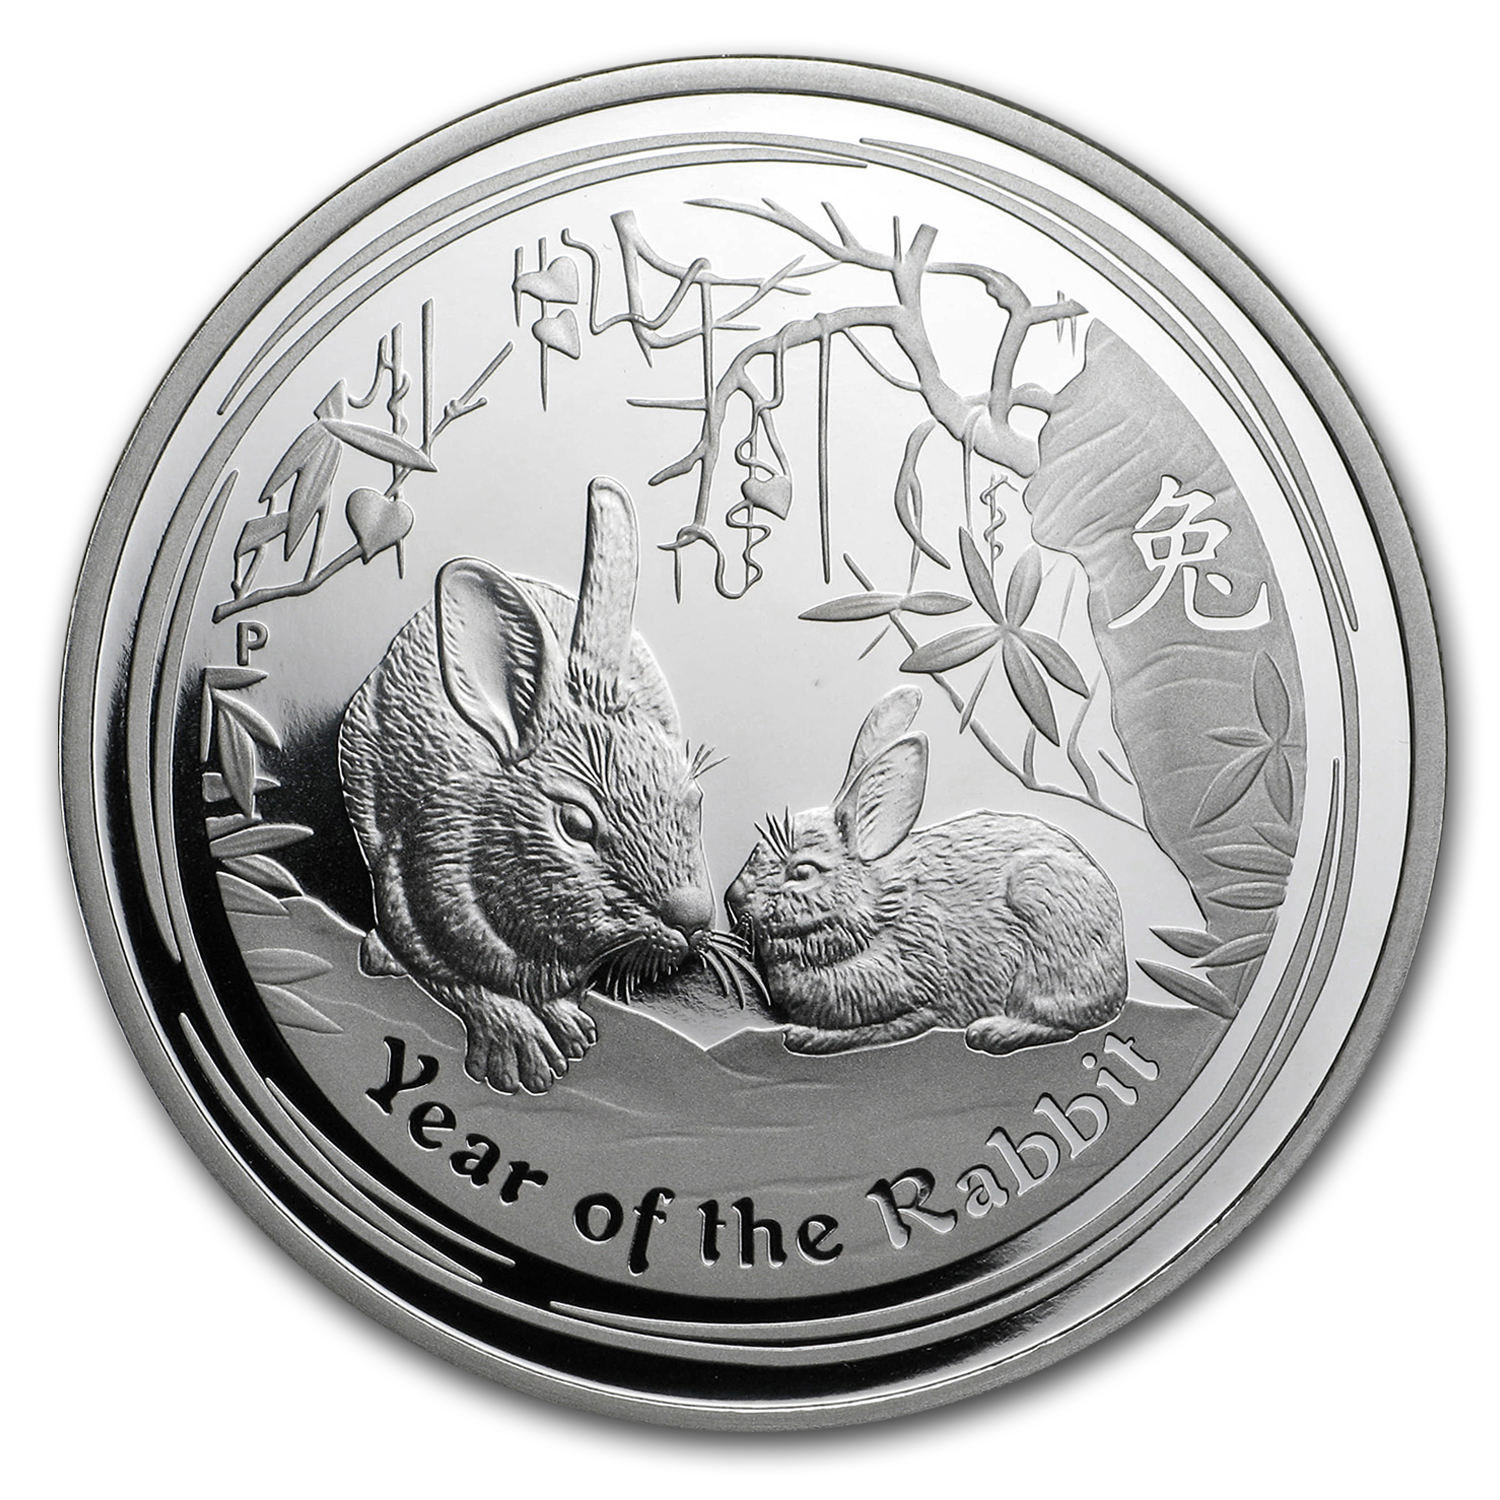 2011 1 oz Silver Australian Year of the Rabbit Proof